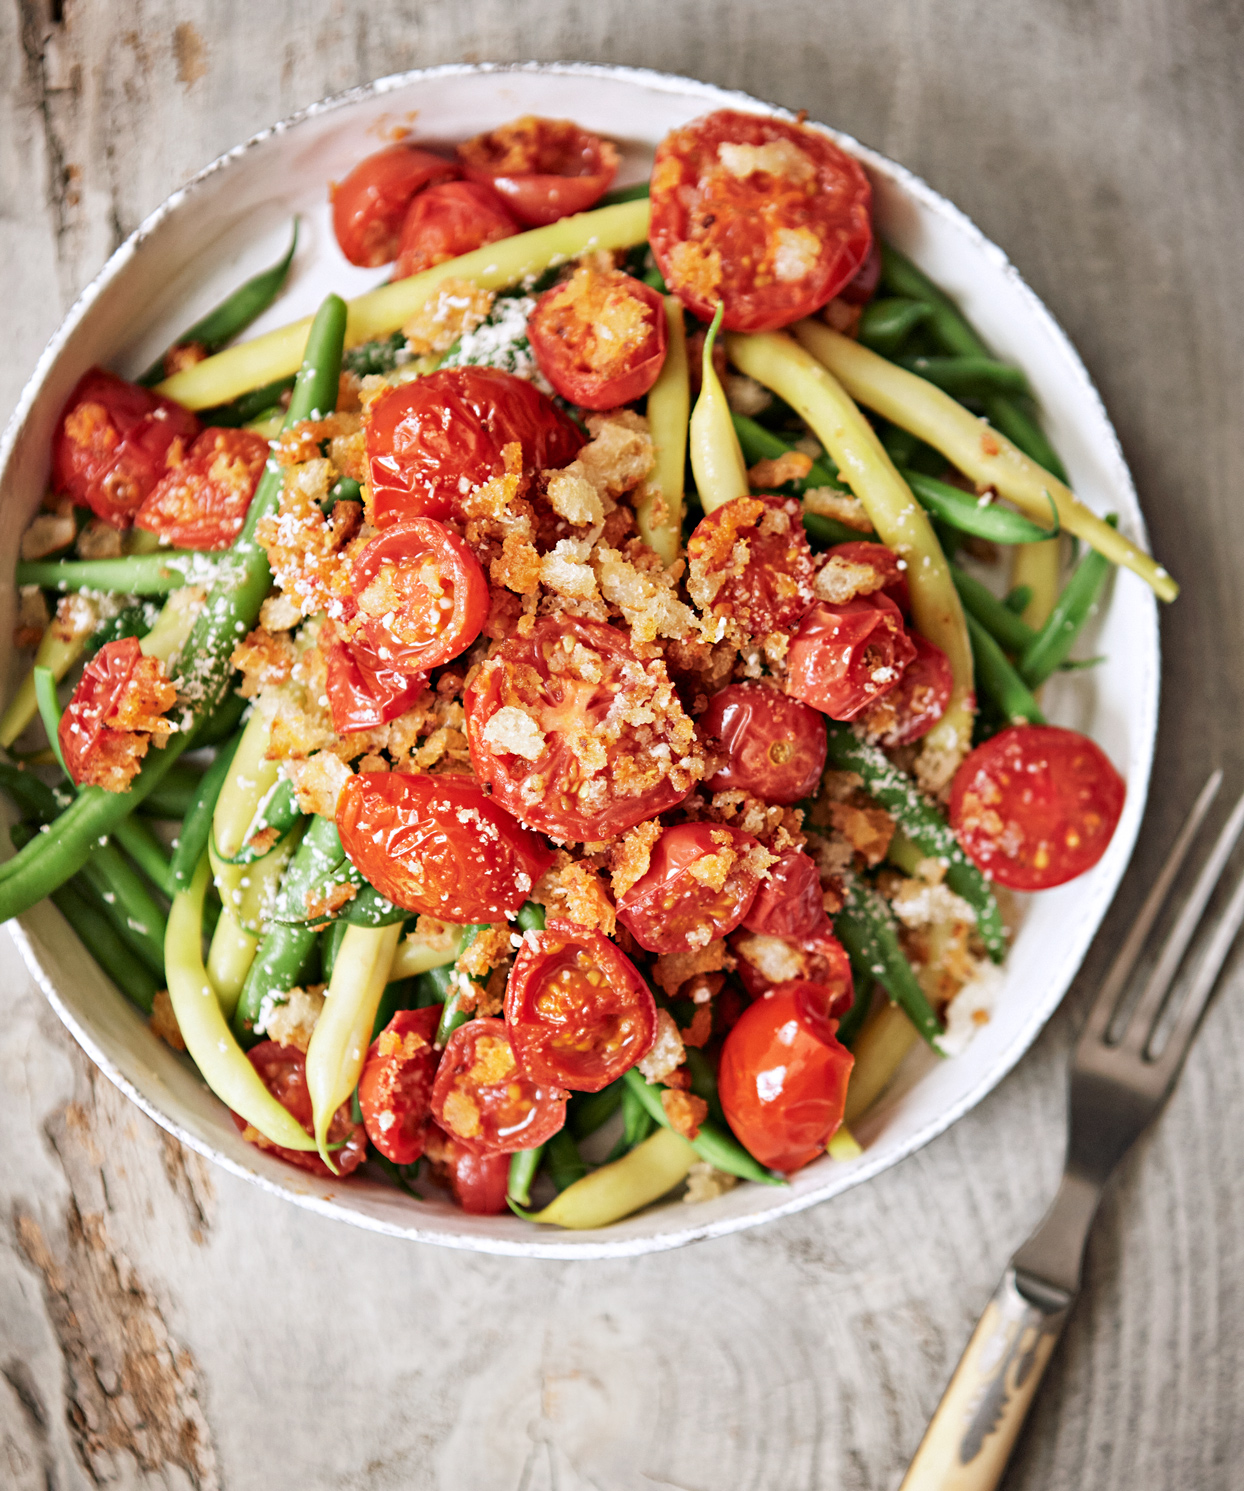 Green Beans with Tomatoes and Crispy Breadcrumbs